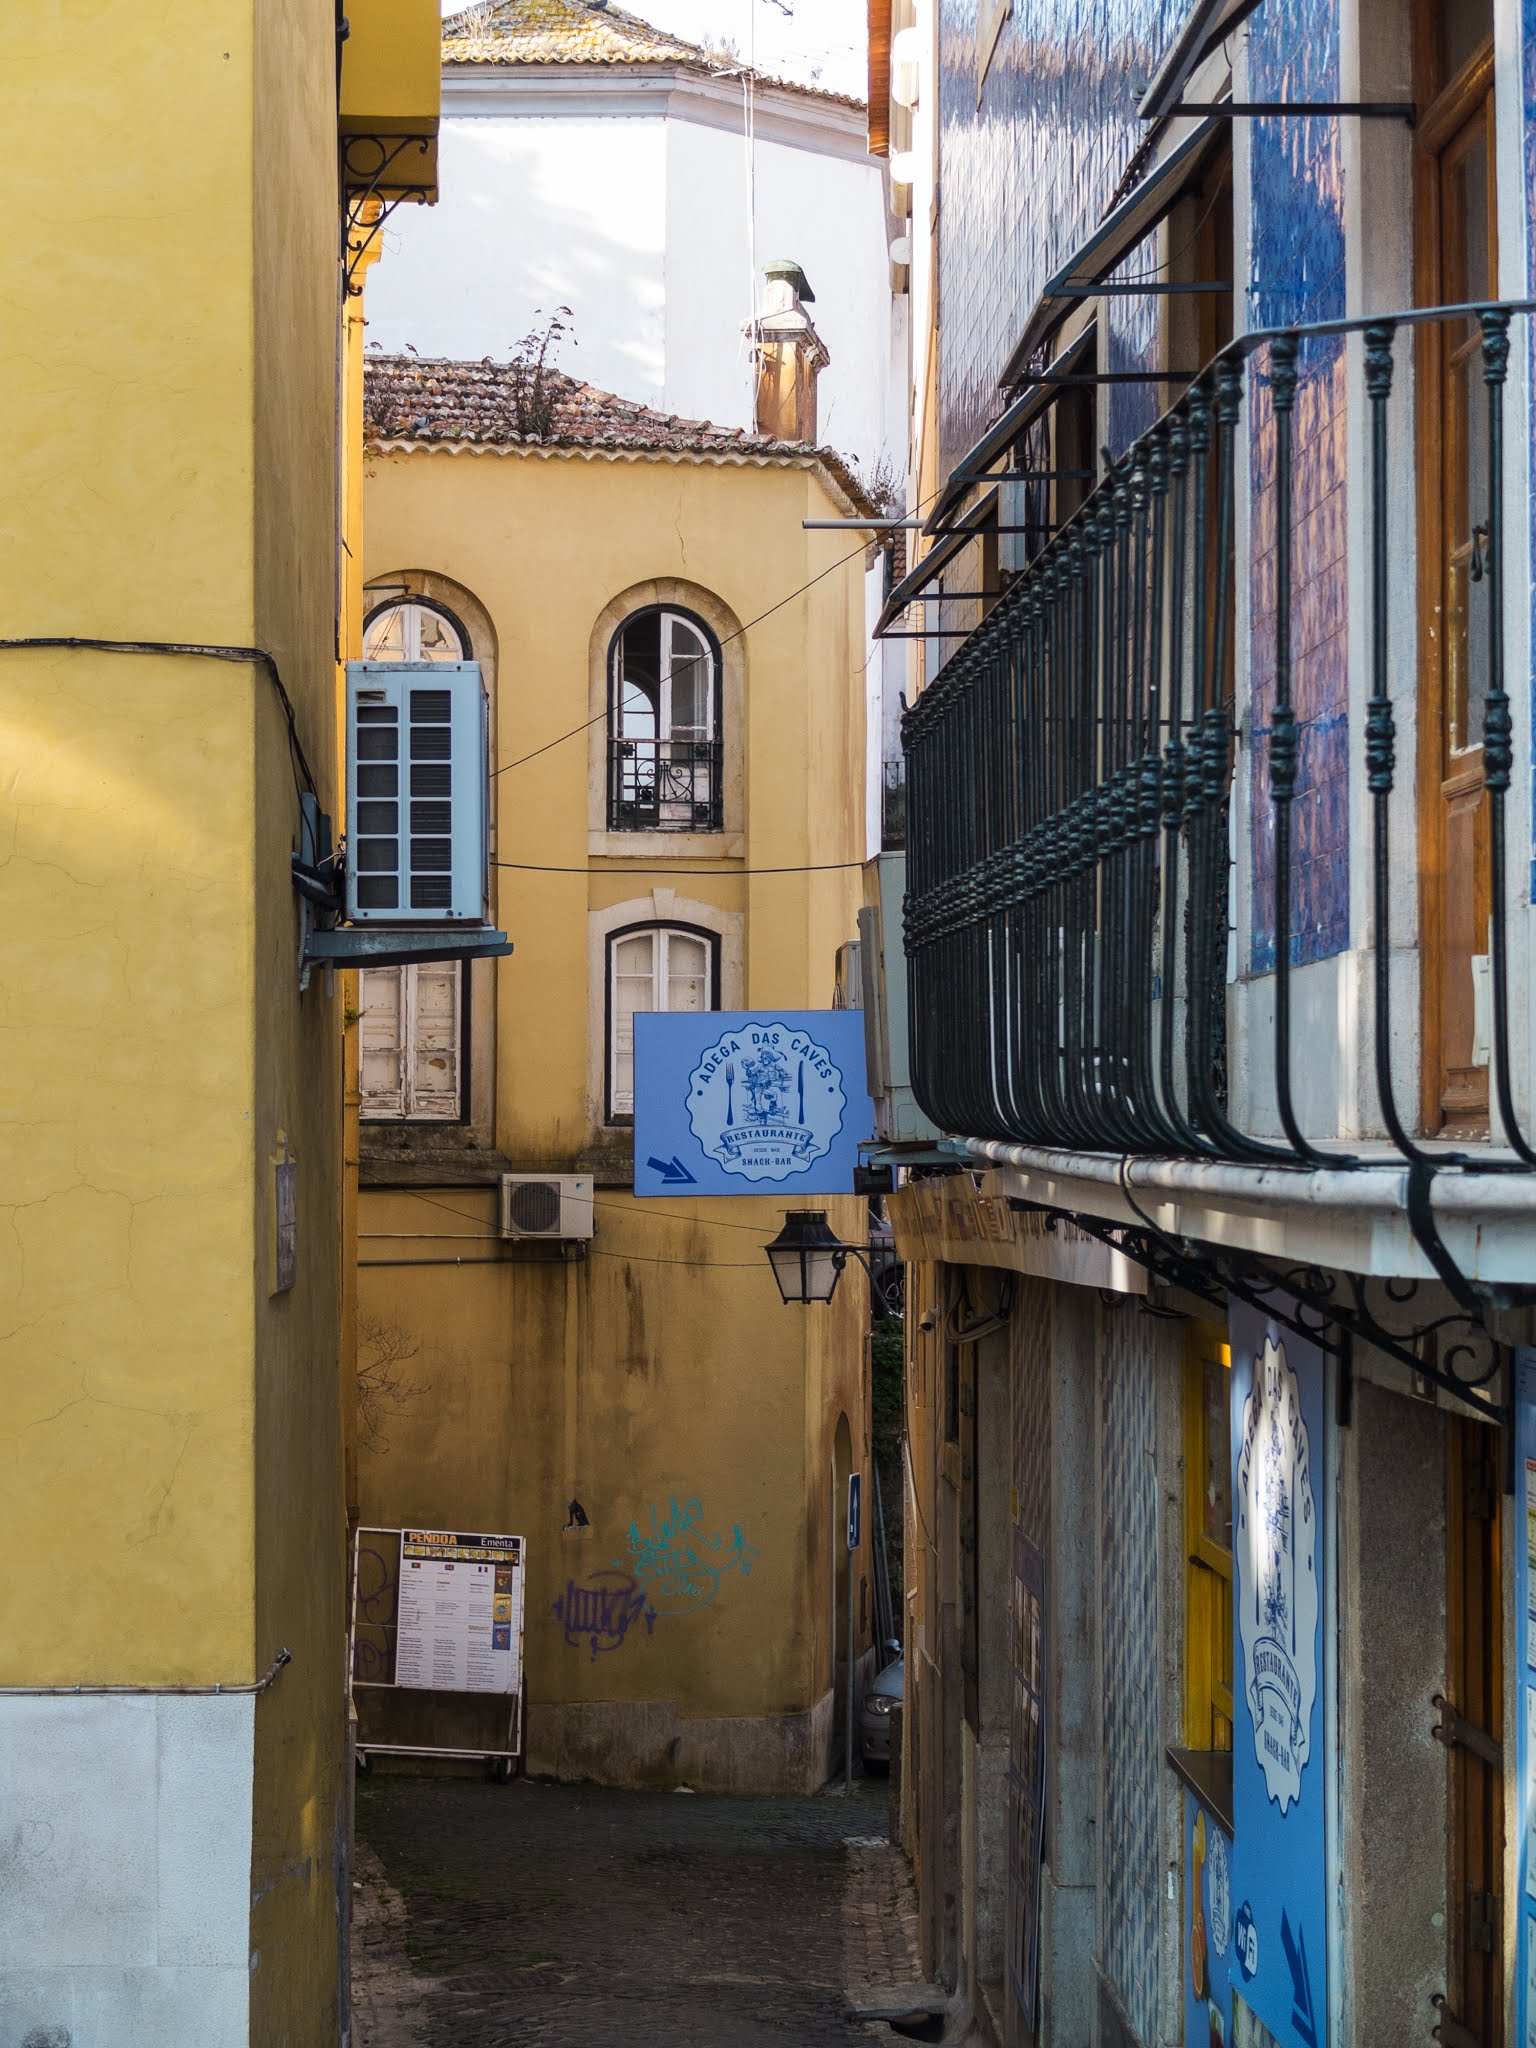 View of yellow buildings and a black railing in an alley in Sintra, Portugal.